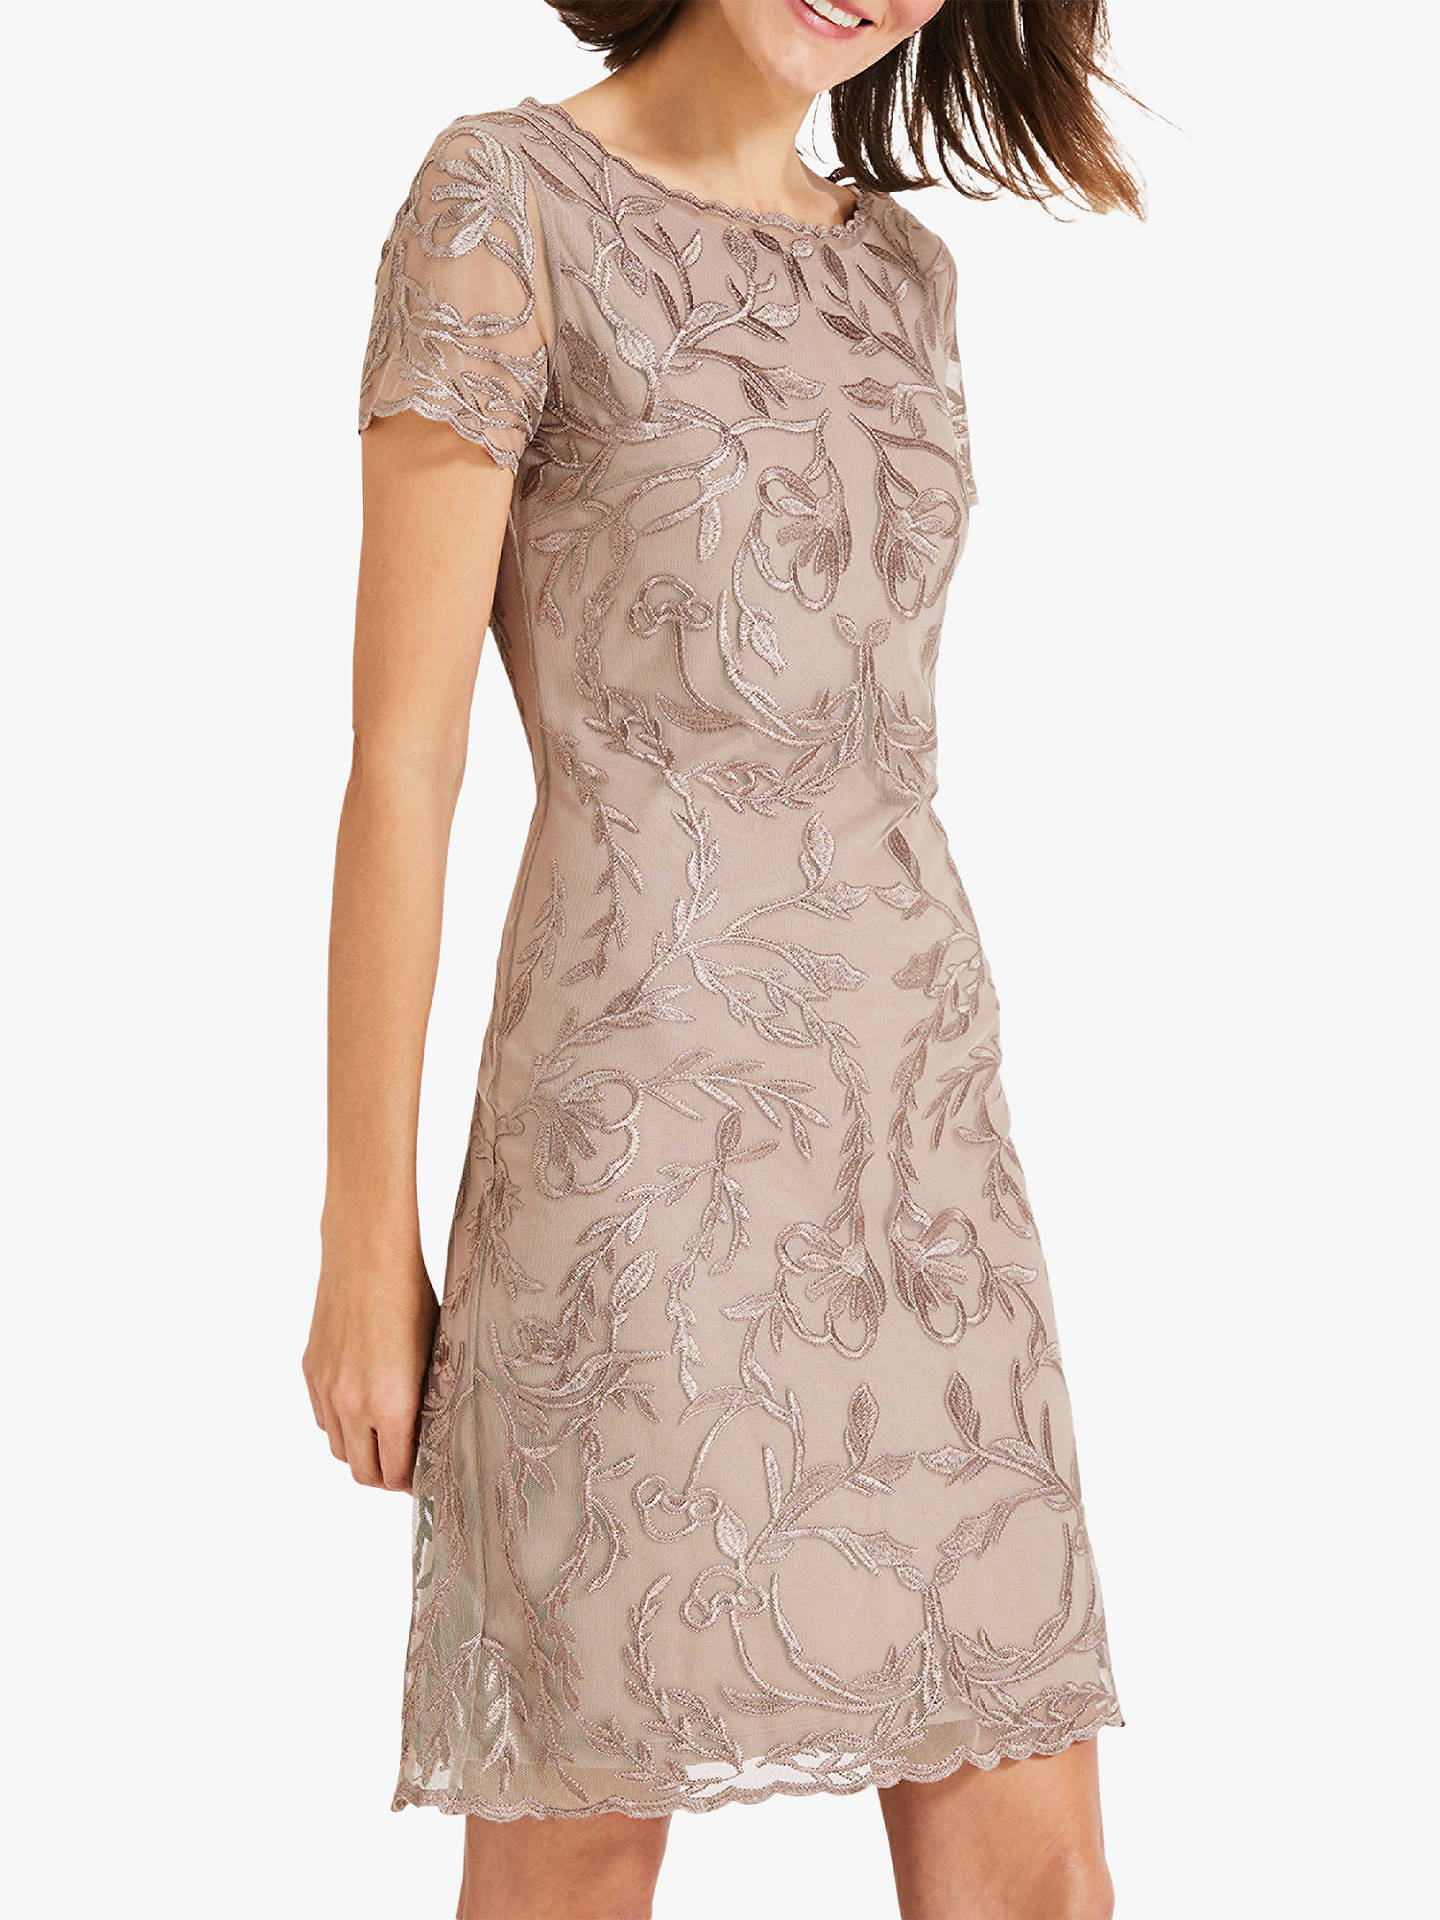 c2faff2e84f08 Phase Eight Alannah Embroidered Mesh Dress, Latte/Oyster